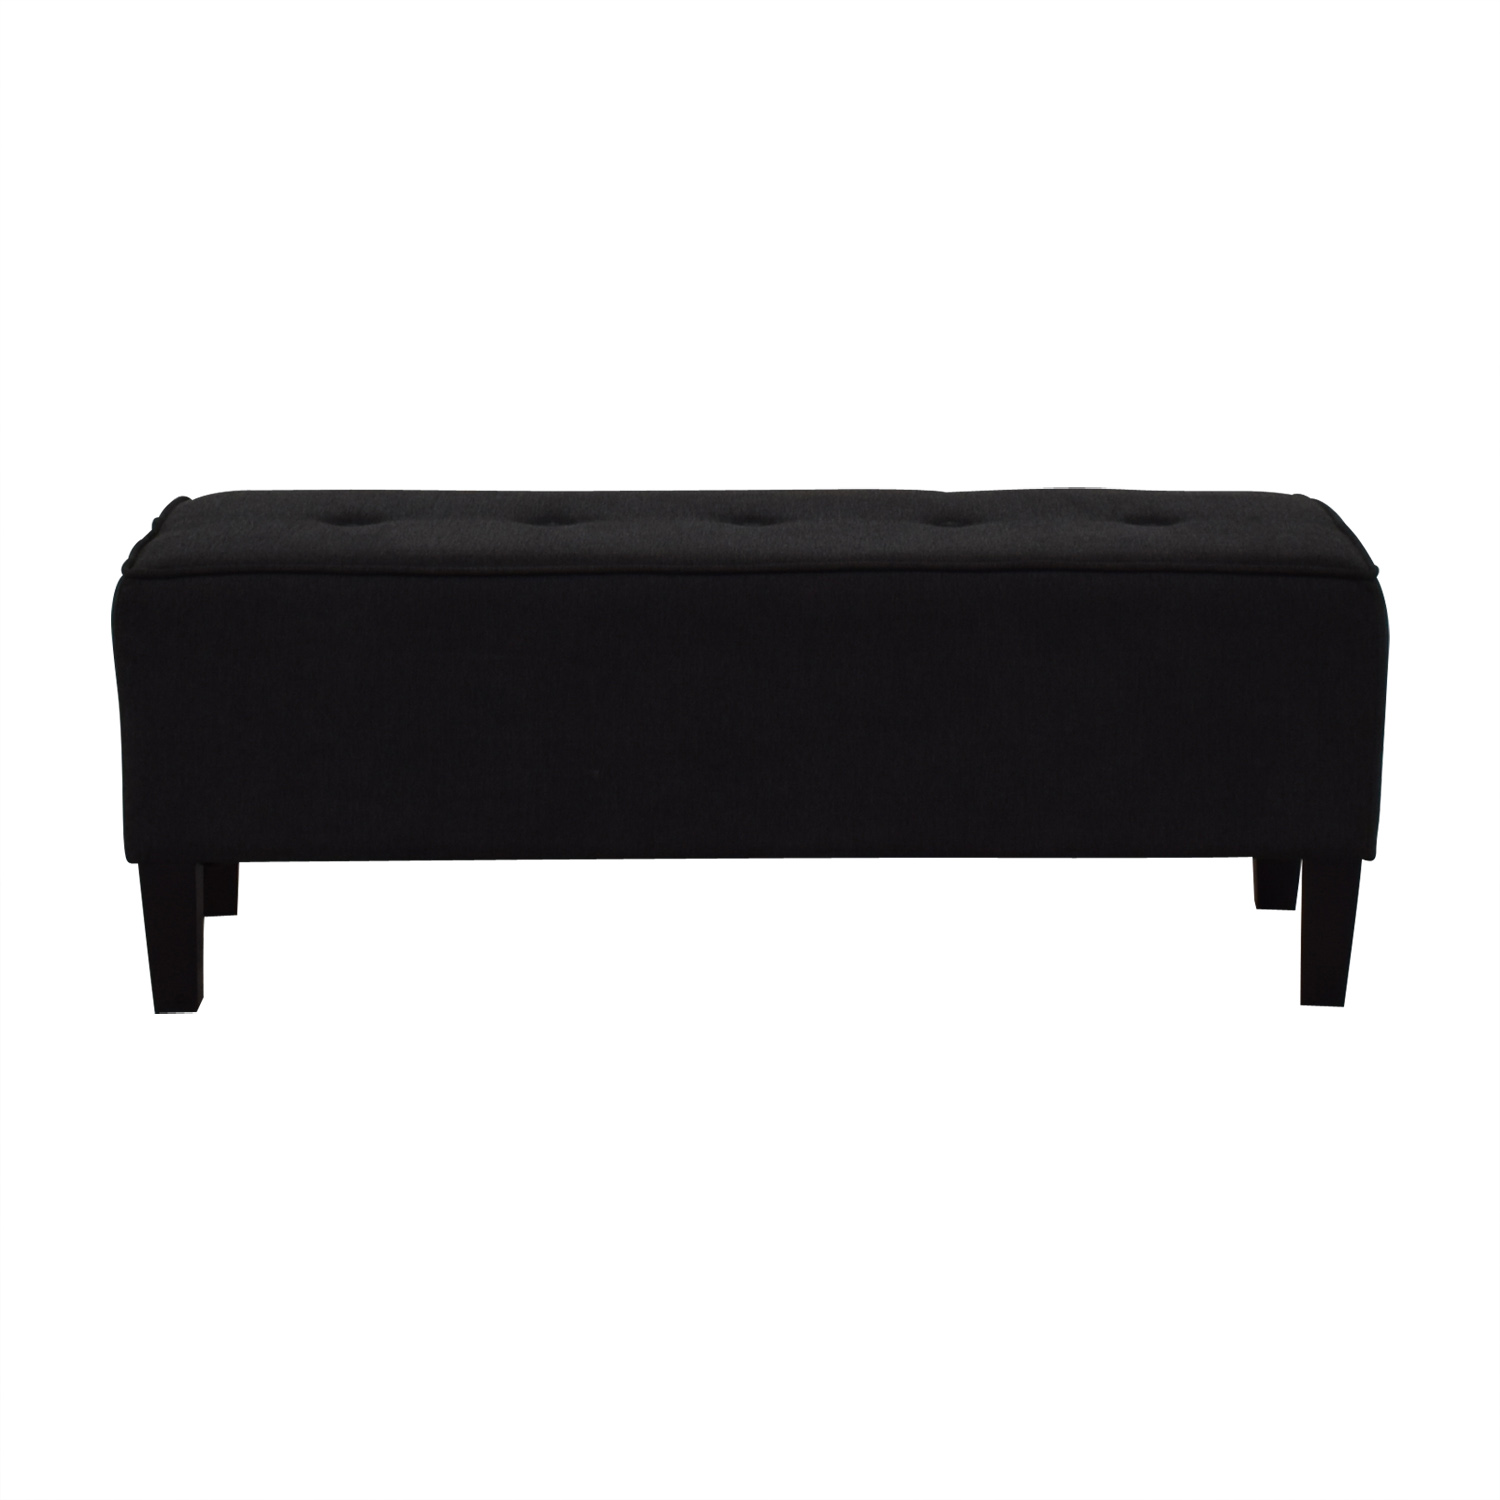 70 Off Ashley Furniture Ashleys Furniture Black Semi Tufted Ottoman Chairs